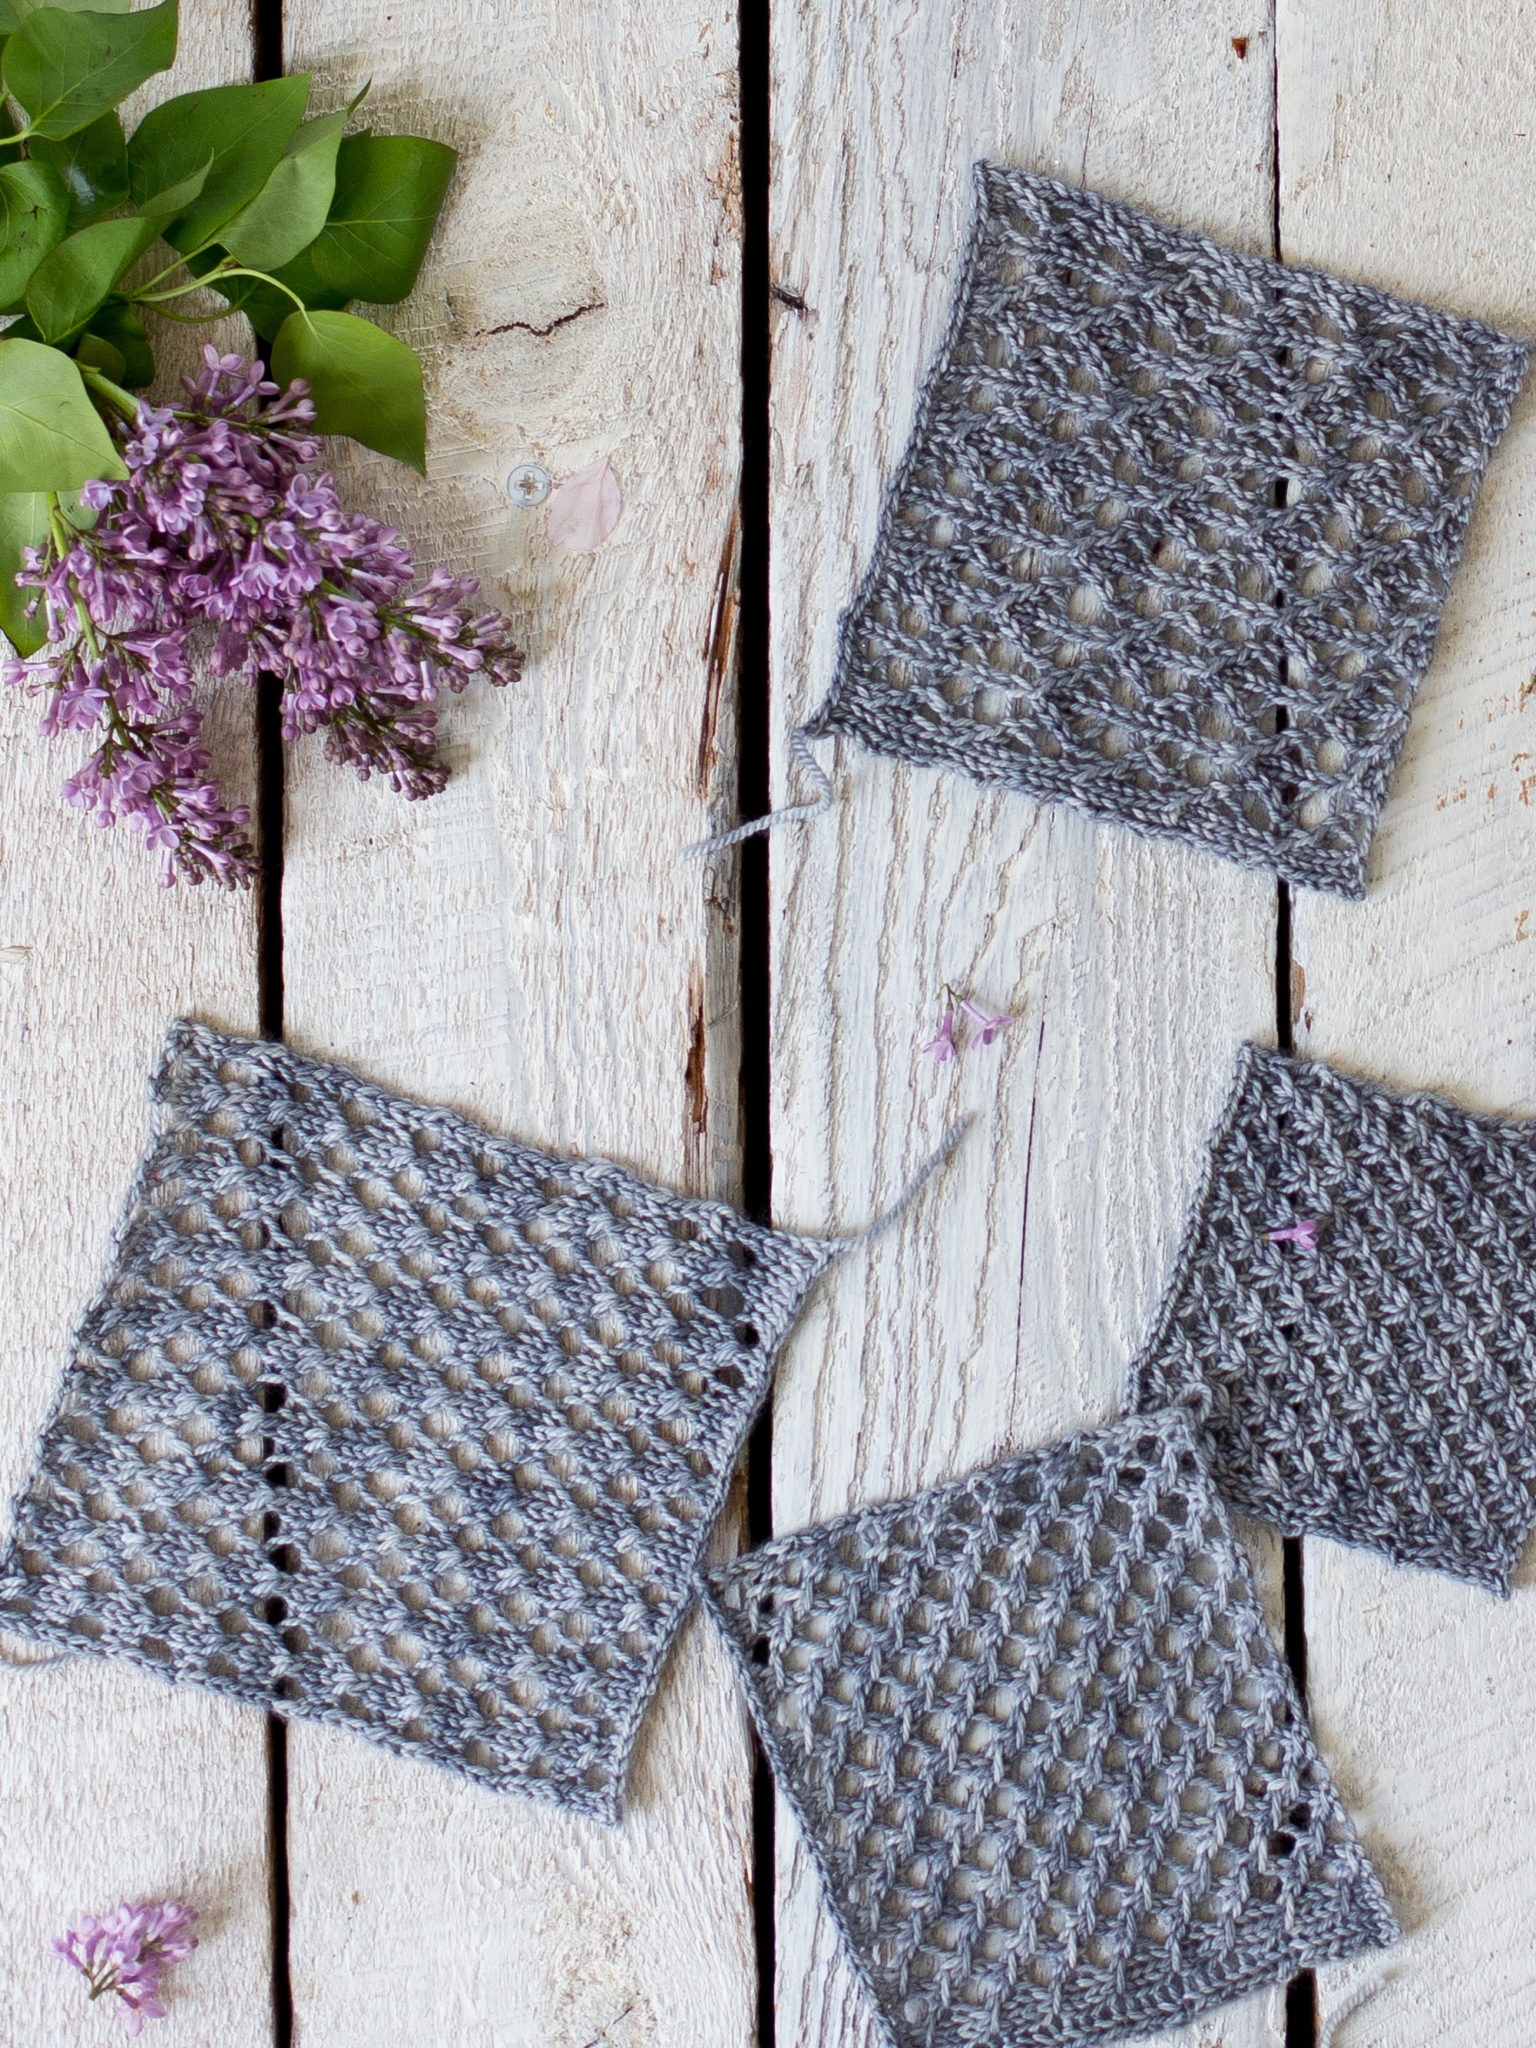 How To Make An Easy Lace Knit Shawl Pattern - Flax & Twine